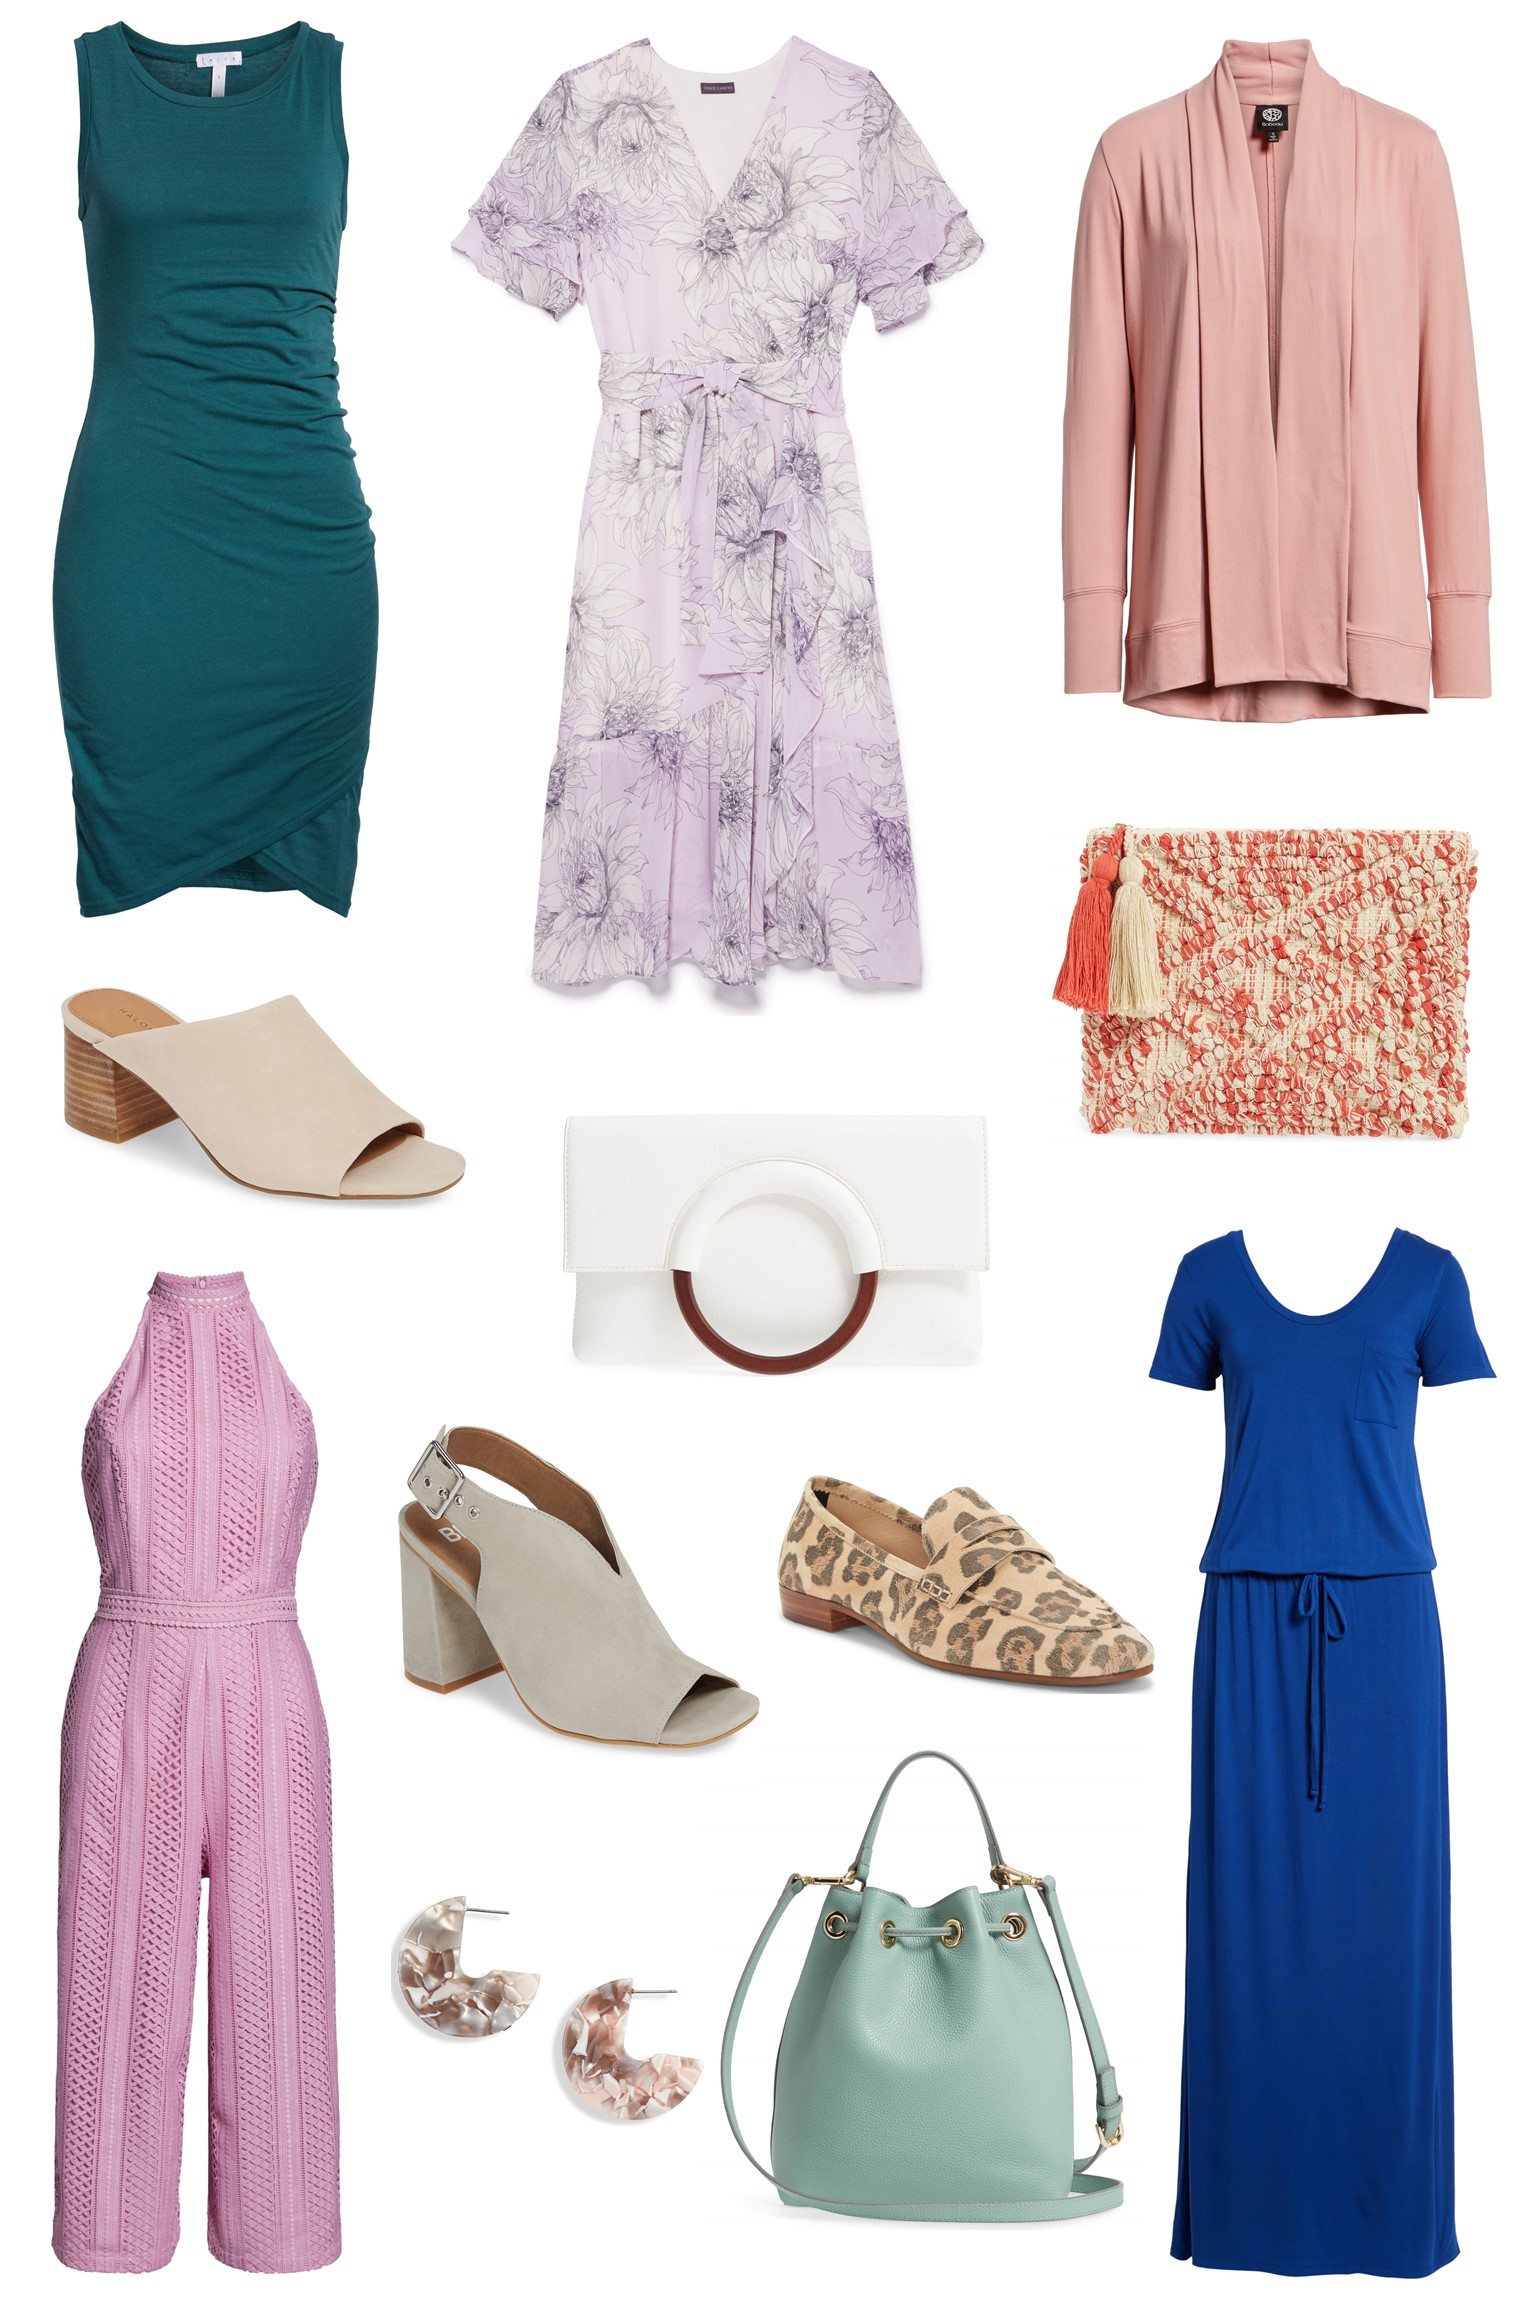 4b023f0c5cd Spring Sale At Nordstrom ⋆ DRESSED IN FAITH